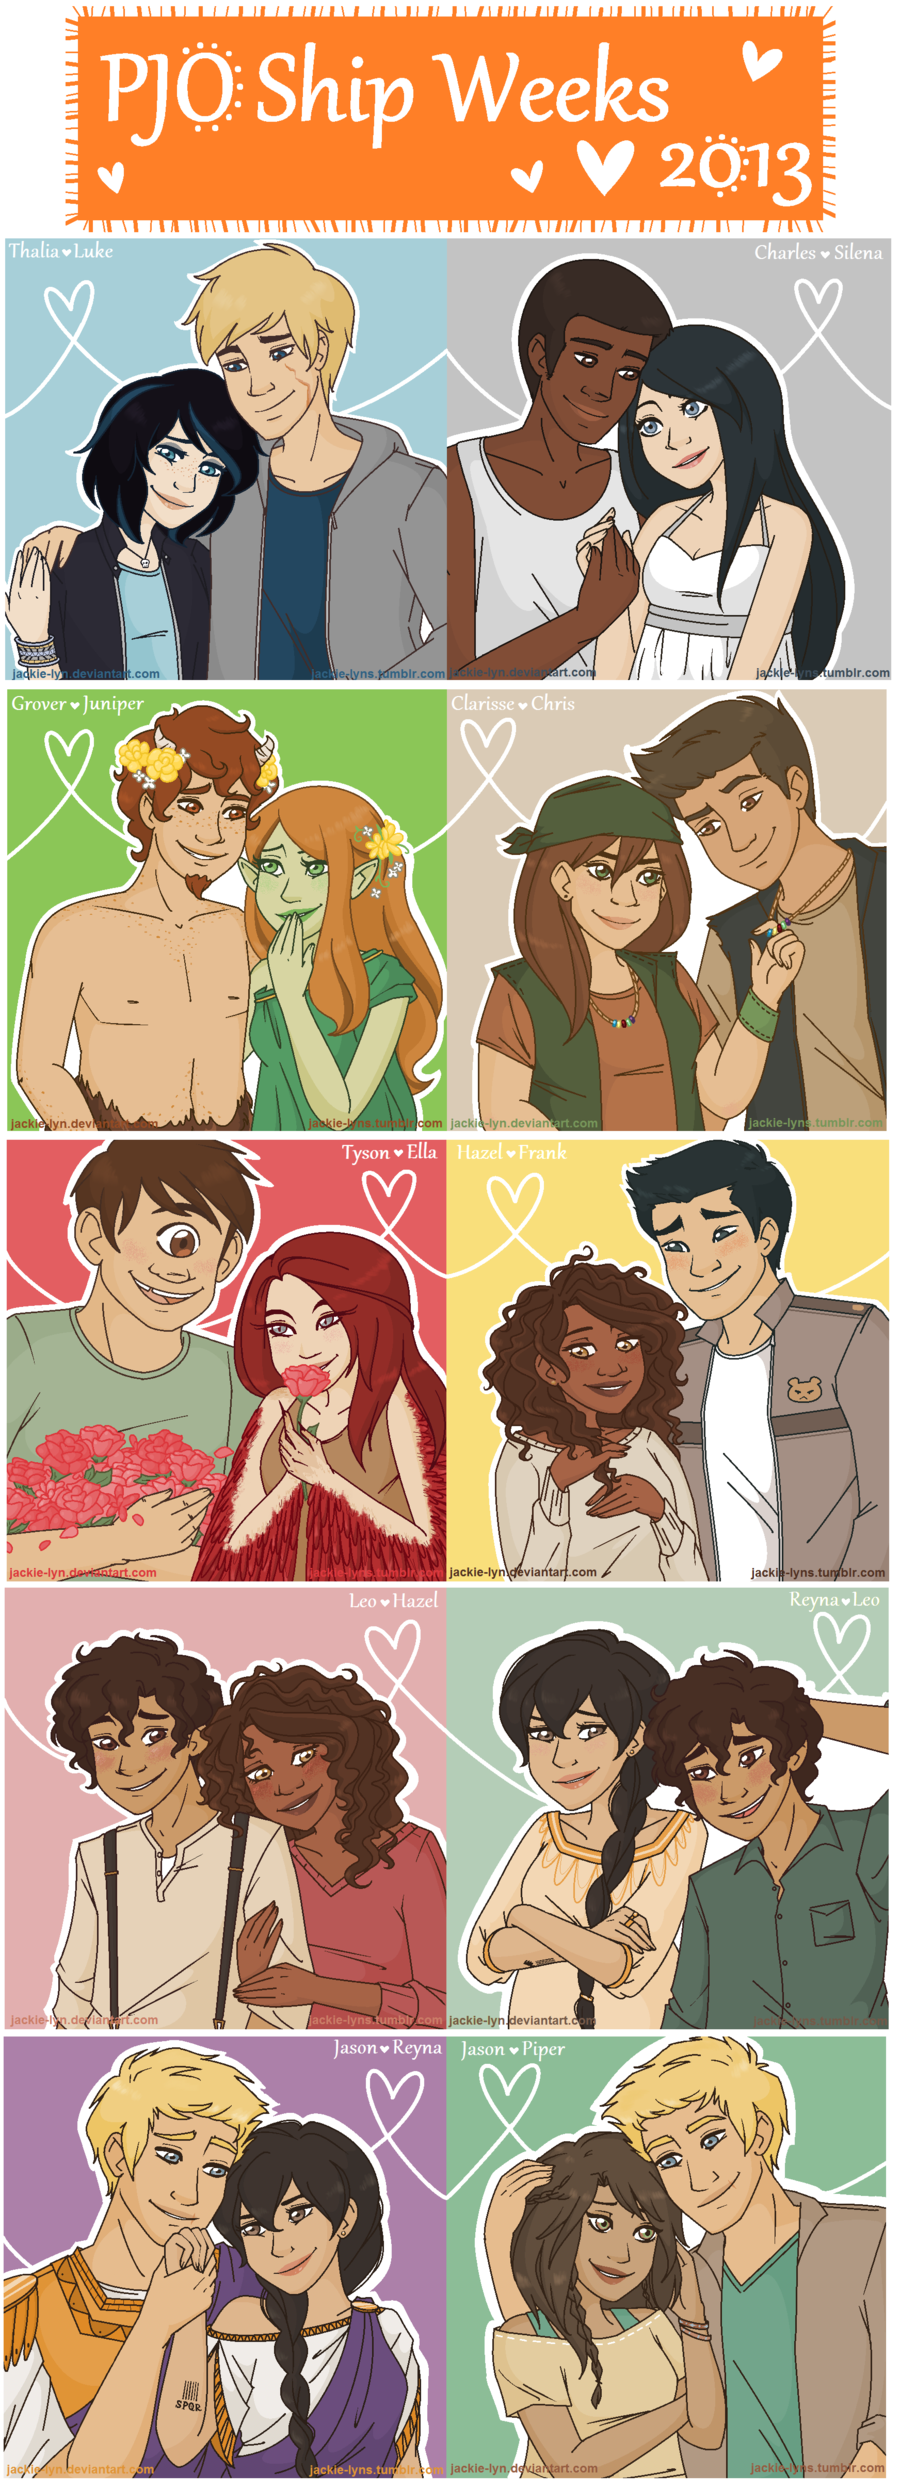 PJO Ship Weeks by Jackie-lyn.deviantart.com on @deviantART